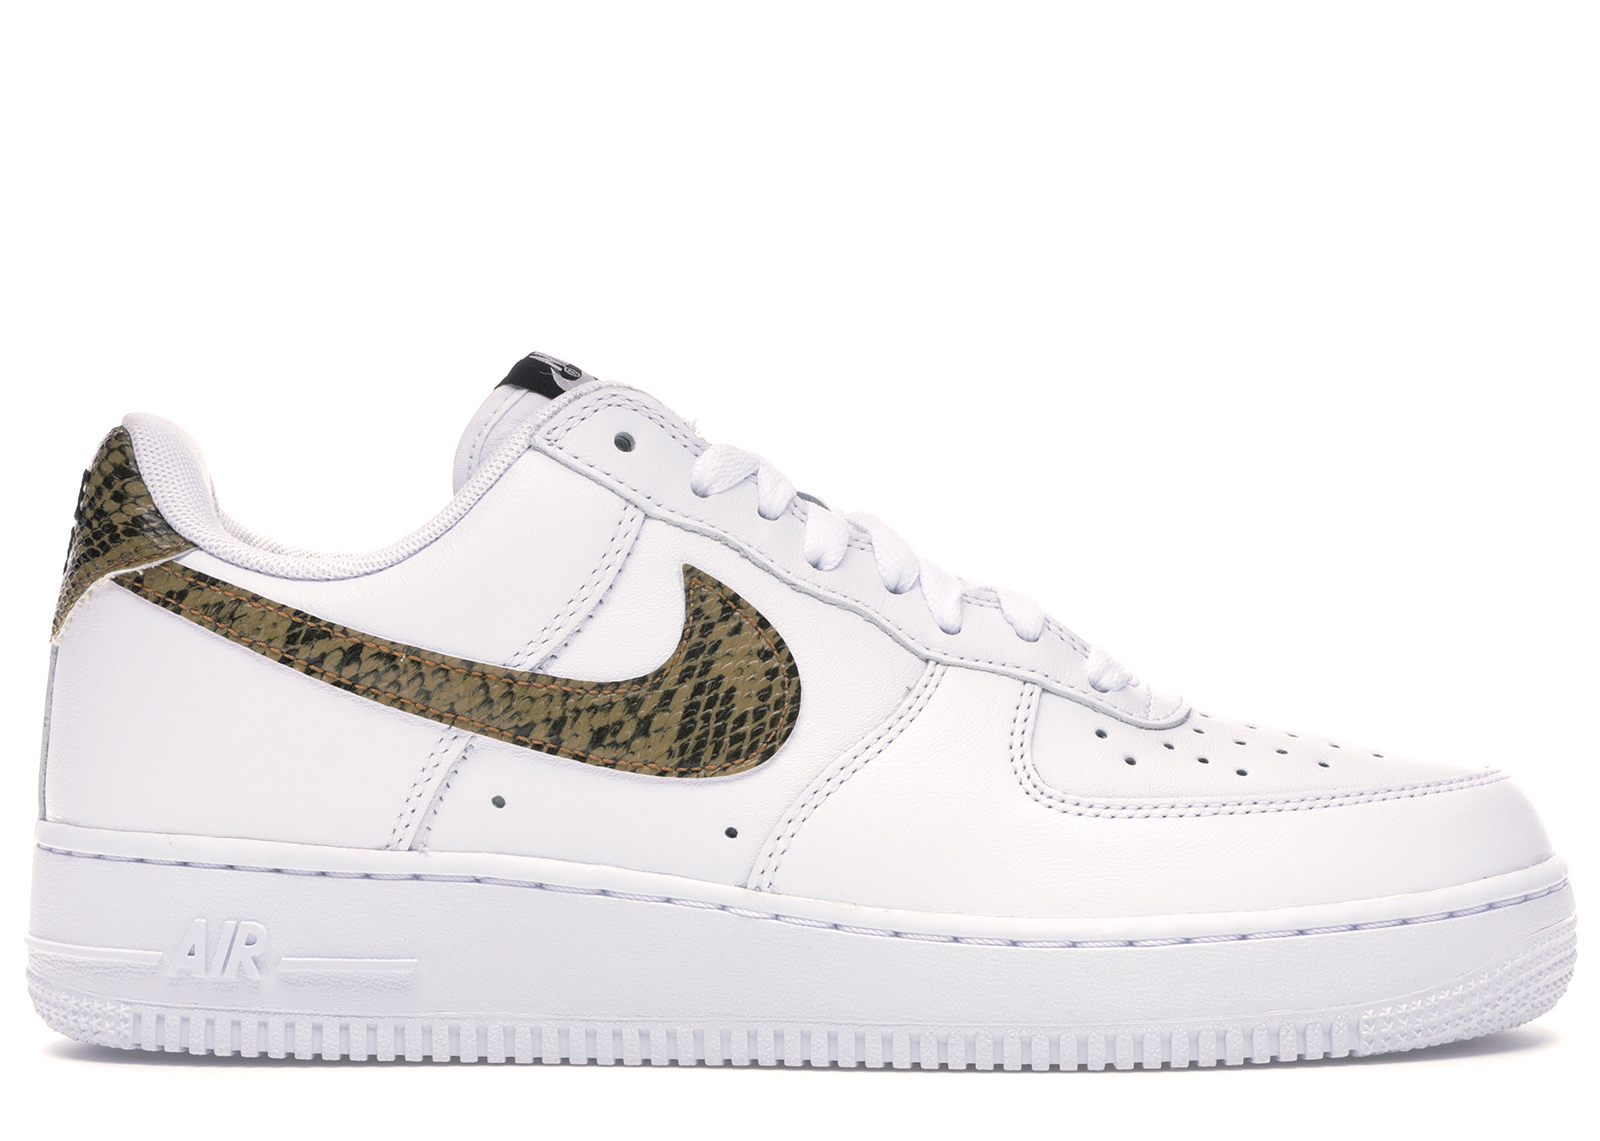 Nike NIKE sneakers air force 1 Lo BlackShiny SilverGreen Glow limited men's (men's) (nike AIR FORCE 1 LOW ICONS Sneaker sneaker SNEAKER MENS shoes